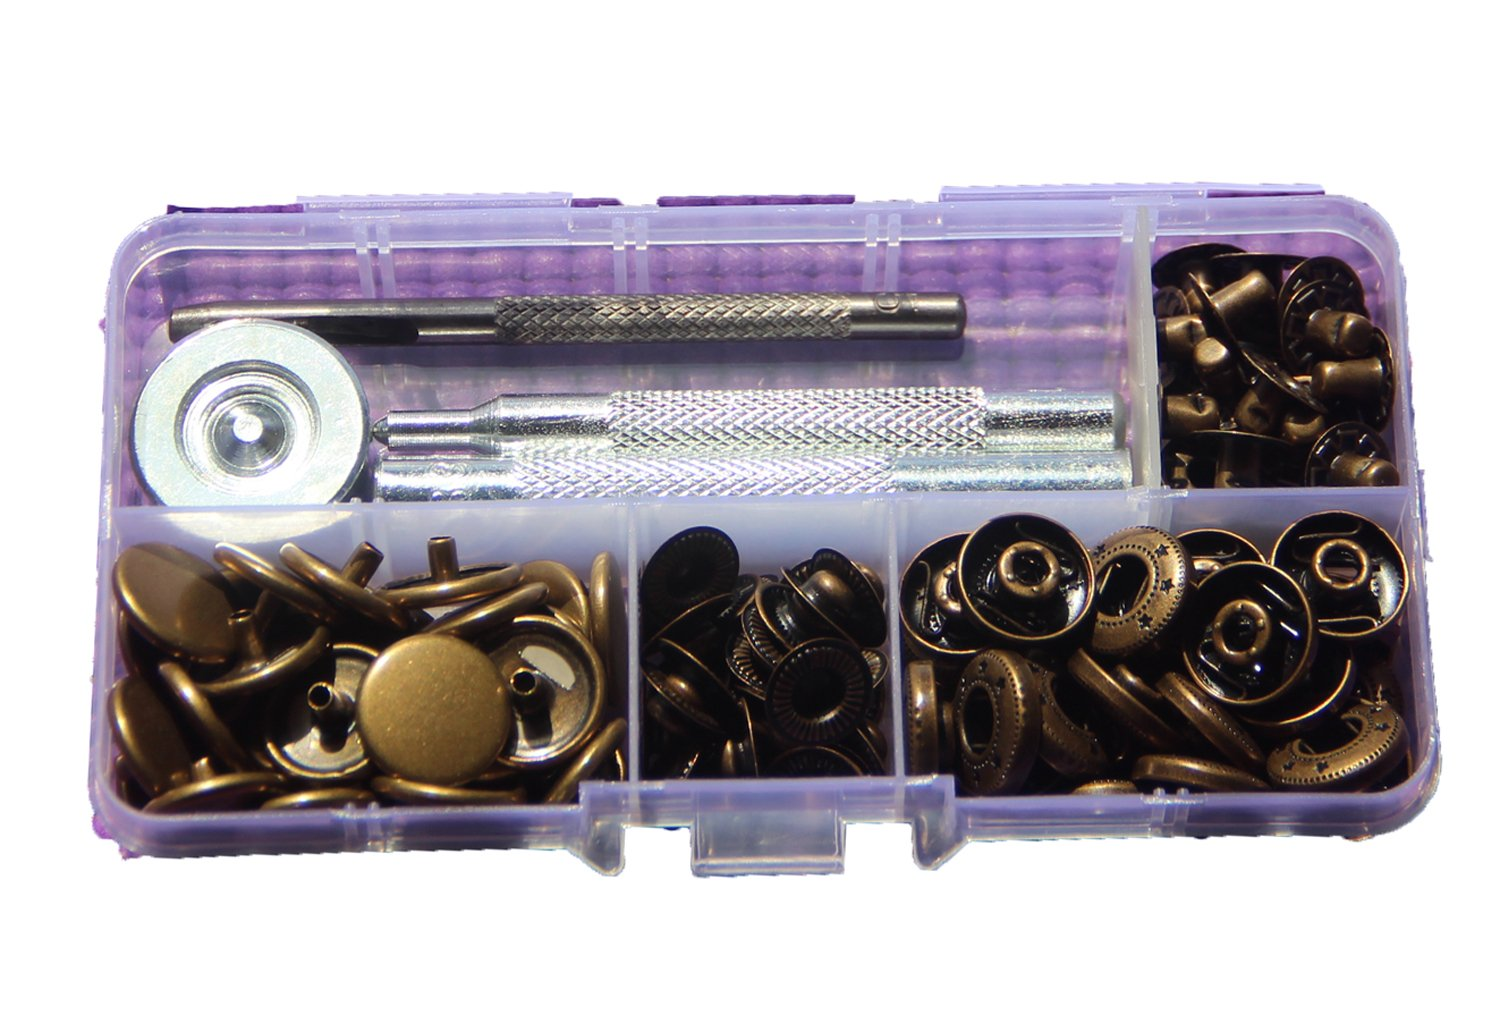 30 Sets 15mm/17mm Heavy Duty Poppers Brass Snap Fasteners Press Stud Rivet  Sewing Leather Craft Clothing w/ 831 Fixing Tools (17mm, Antique Brass)